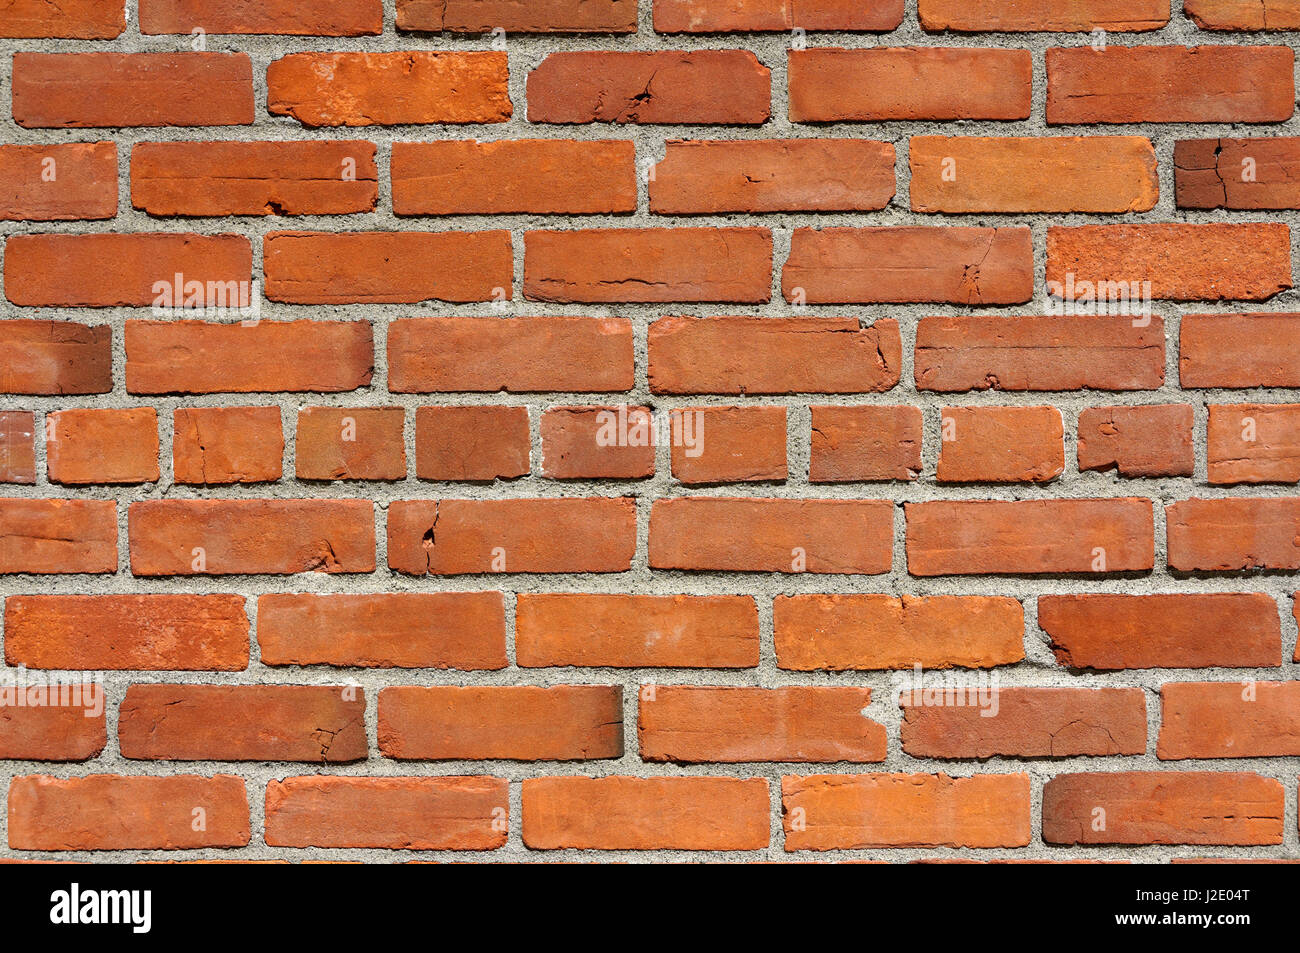 Close-up of a red brick wall with mortar - Stock Image